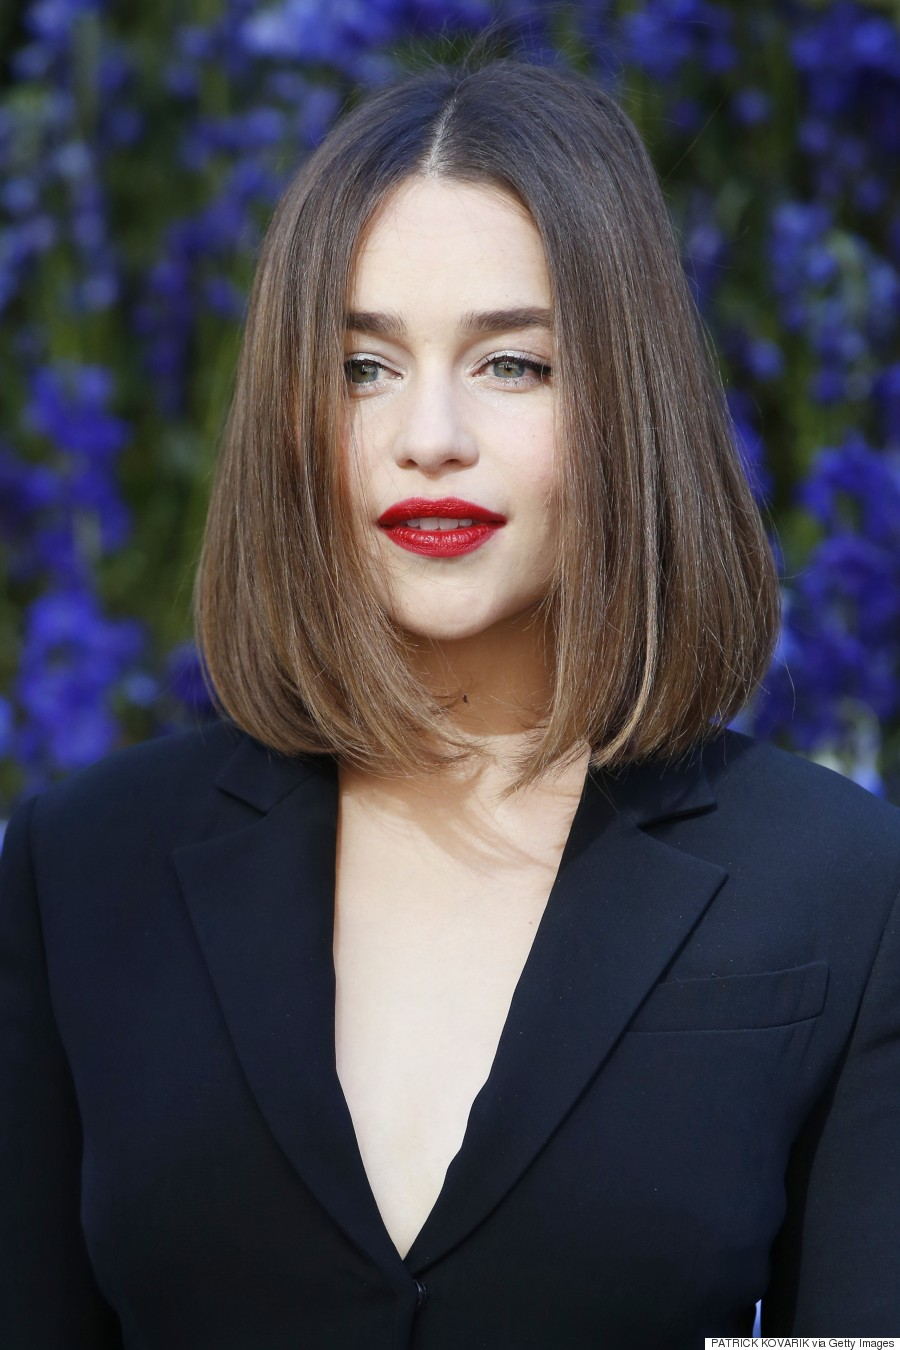 Haircuts 2016 The Hottest Chops To Try This Year